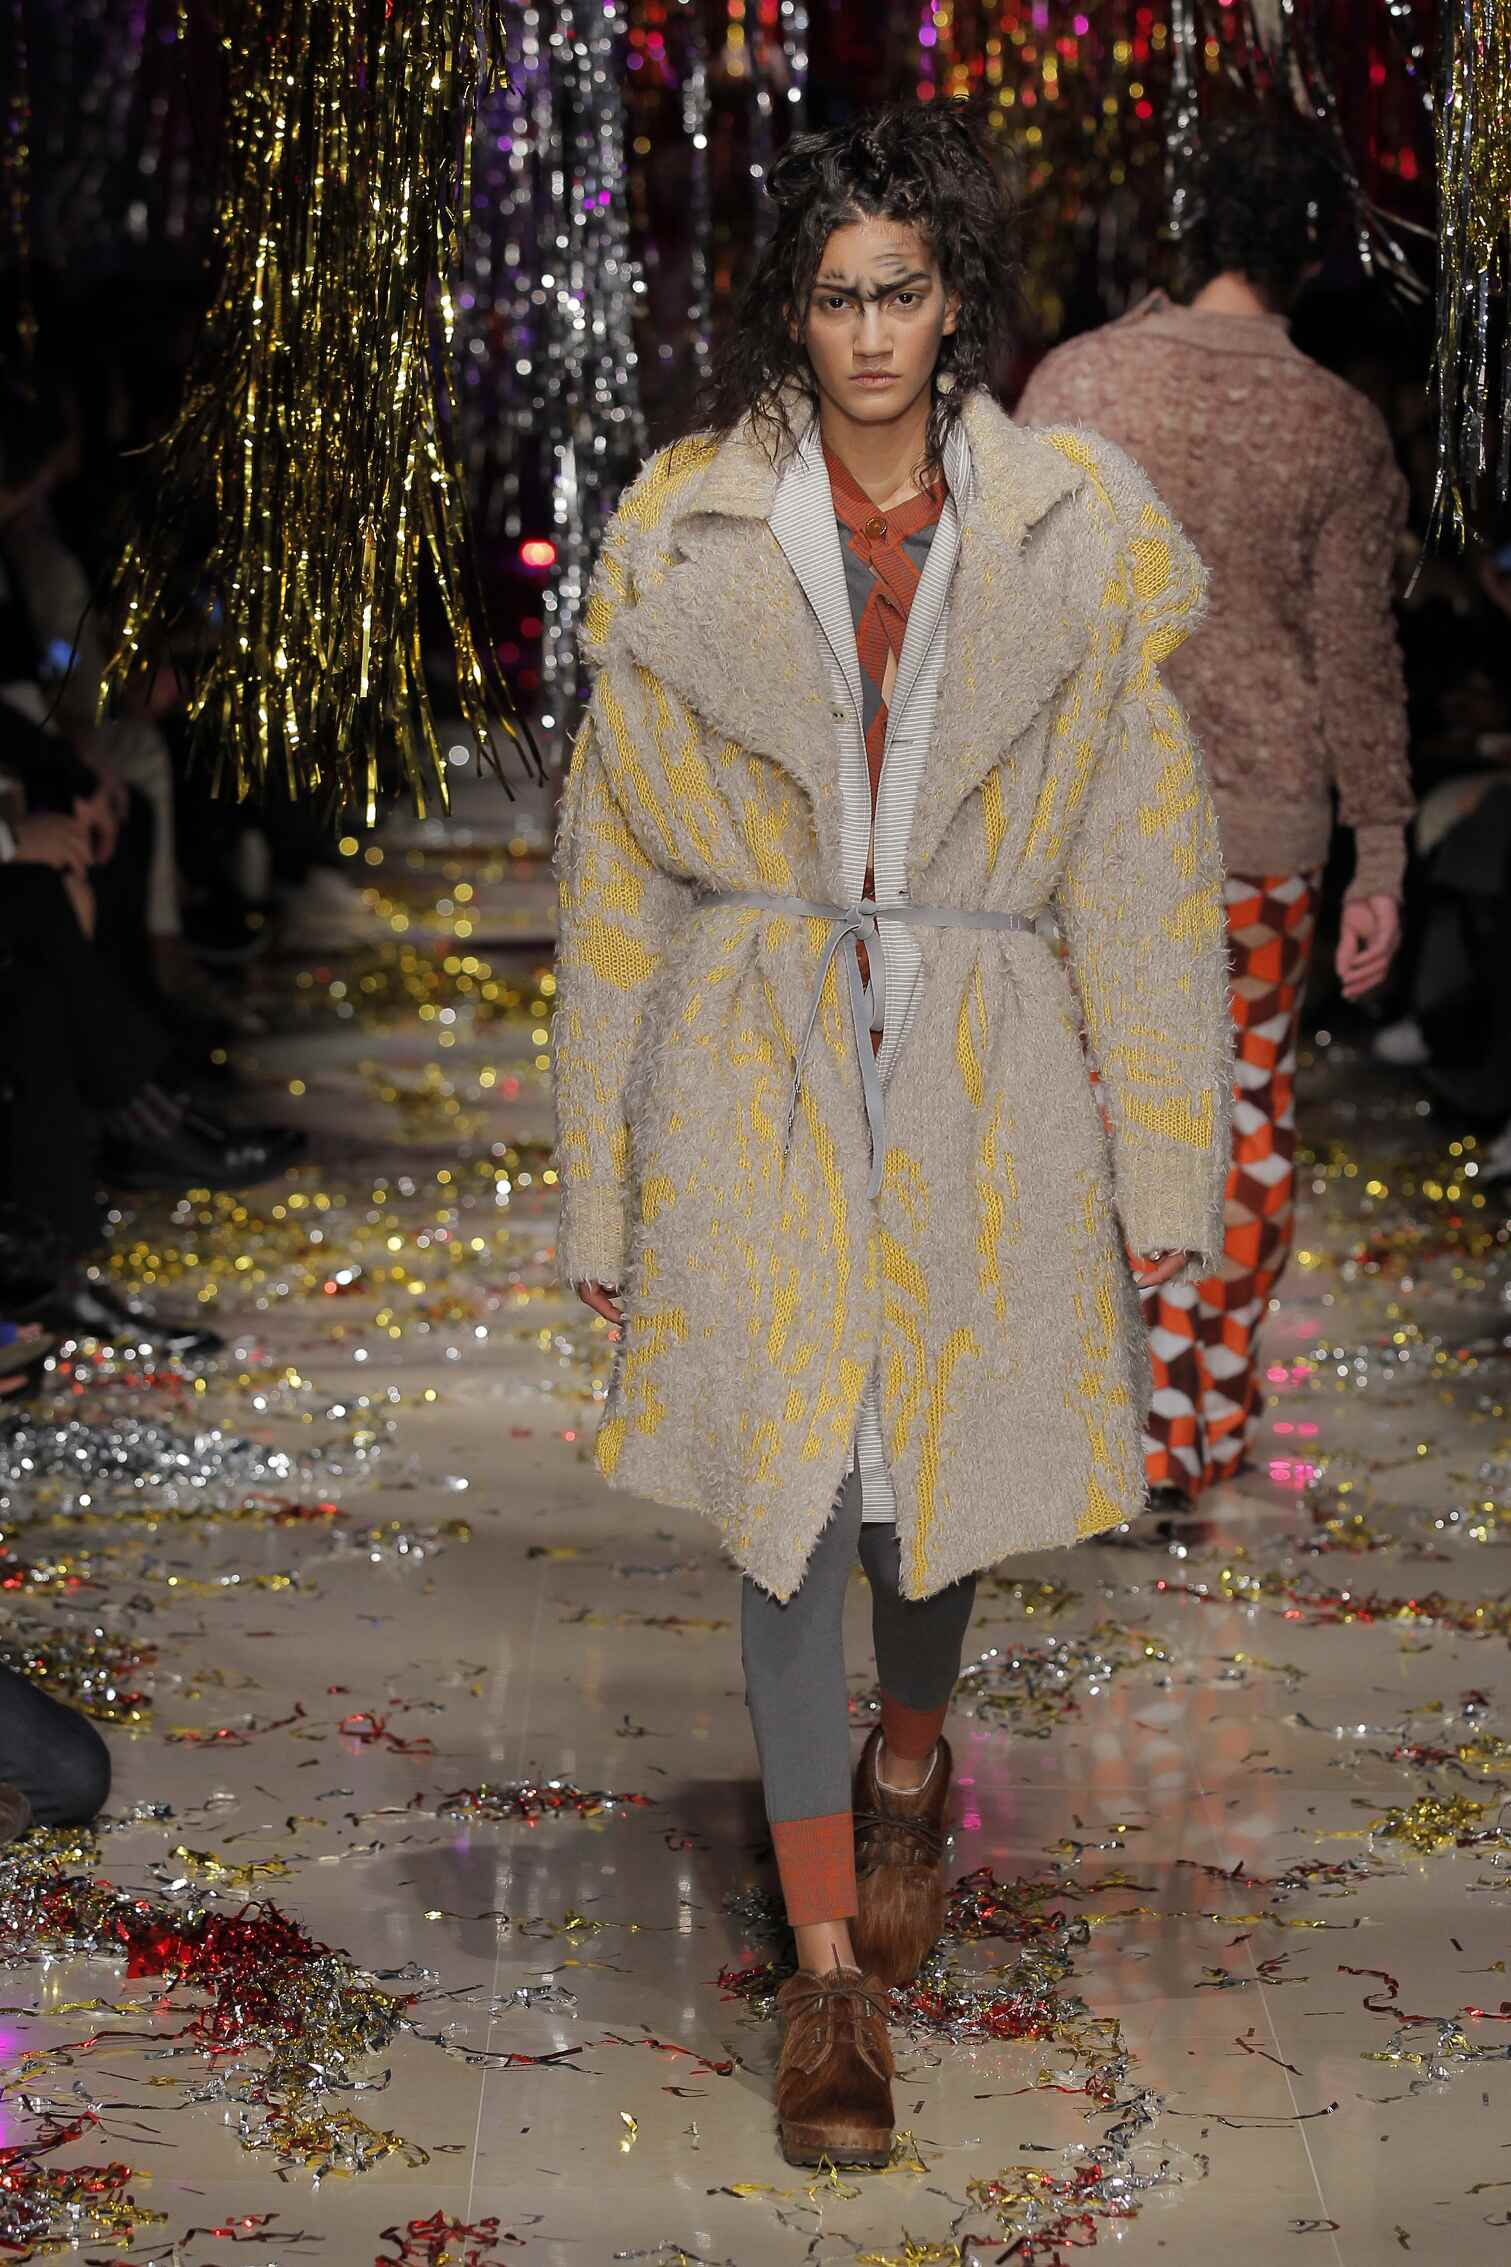 Catwalk Vivienne Westwood Gold Label Womenswear Collection Winter 2015